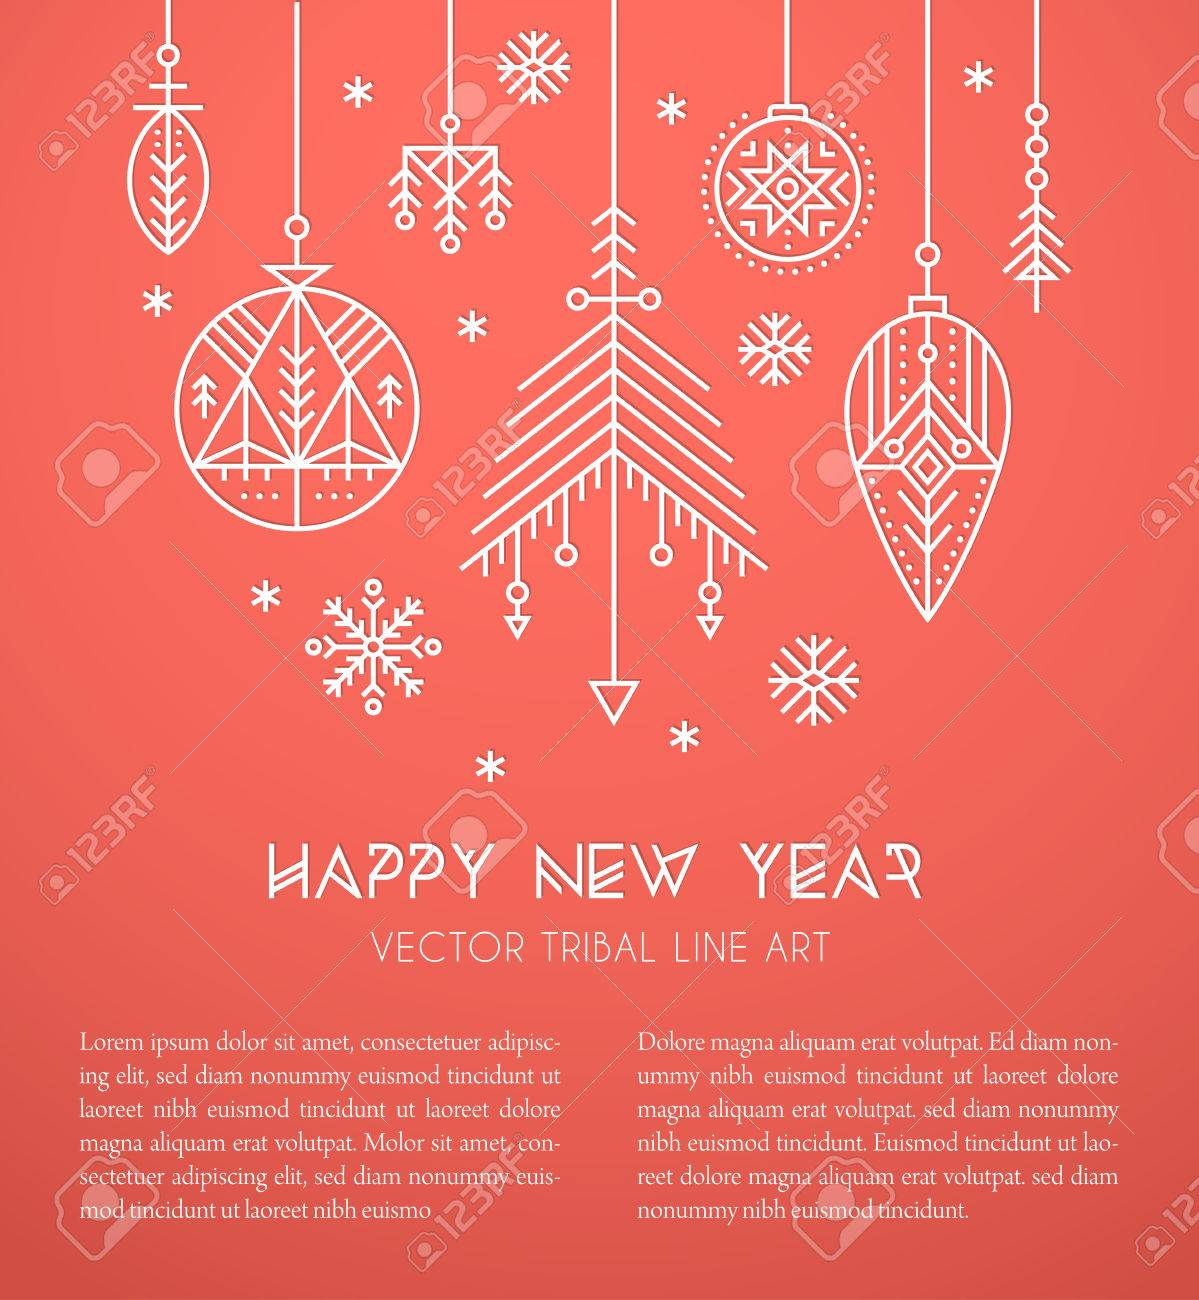 new year greeting card template with hanging decorations and snowflakes creative tribal line style design